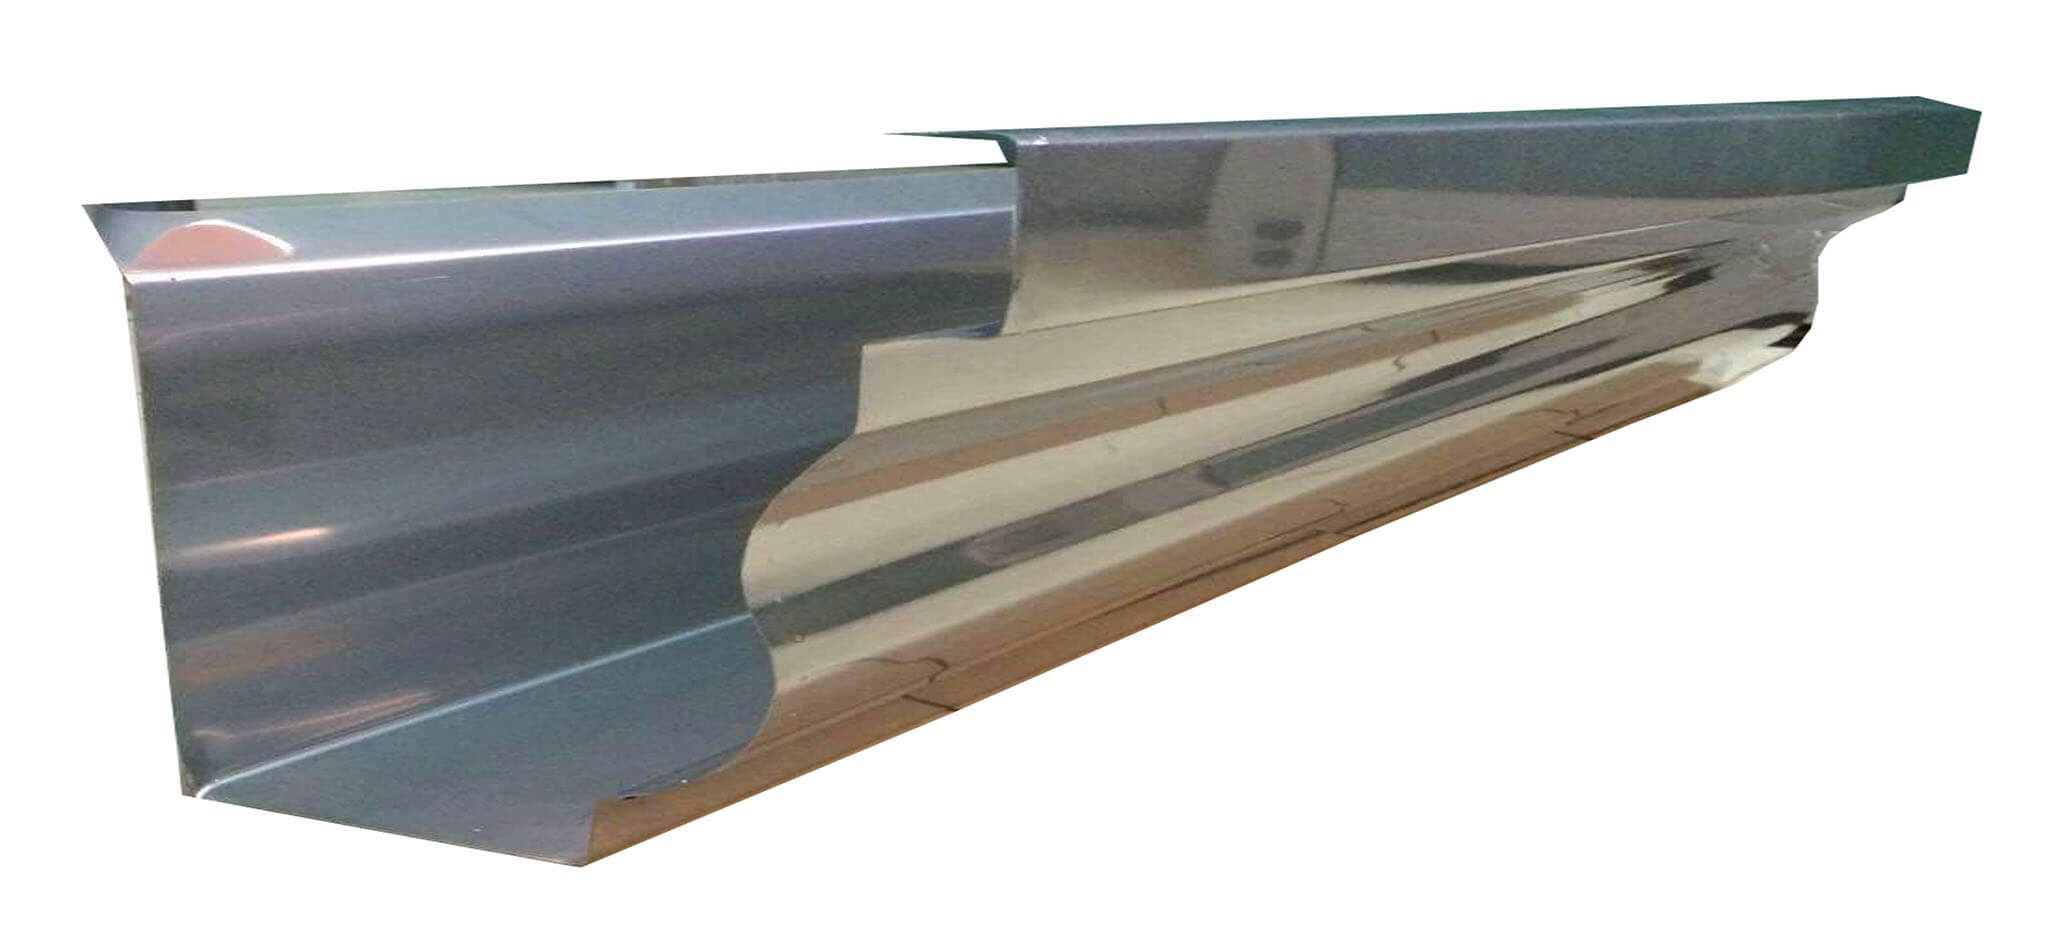 Stainless Roof Gutters Alpha Steel Roofing Supplier In The Philippines In 2020 Steel Roofing Gutters Roofing